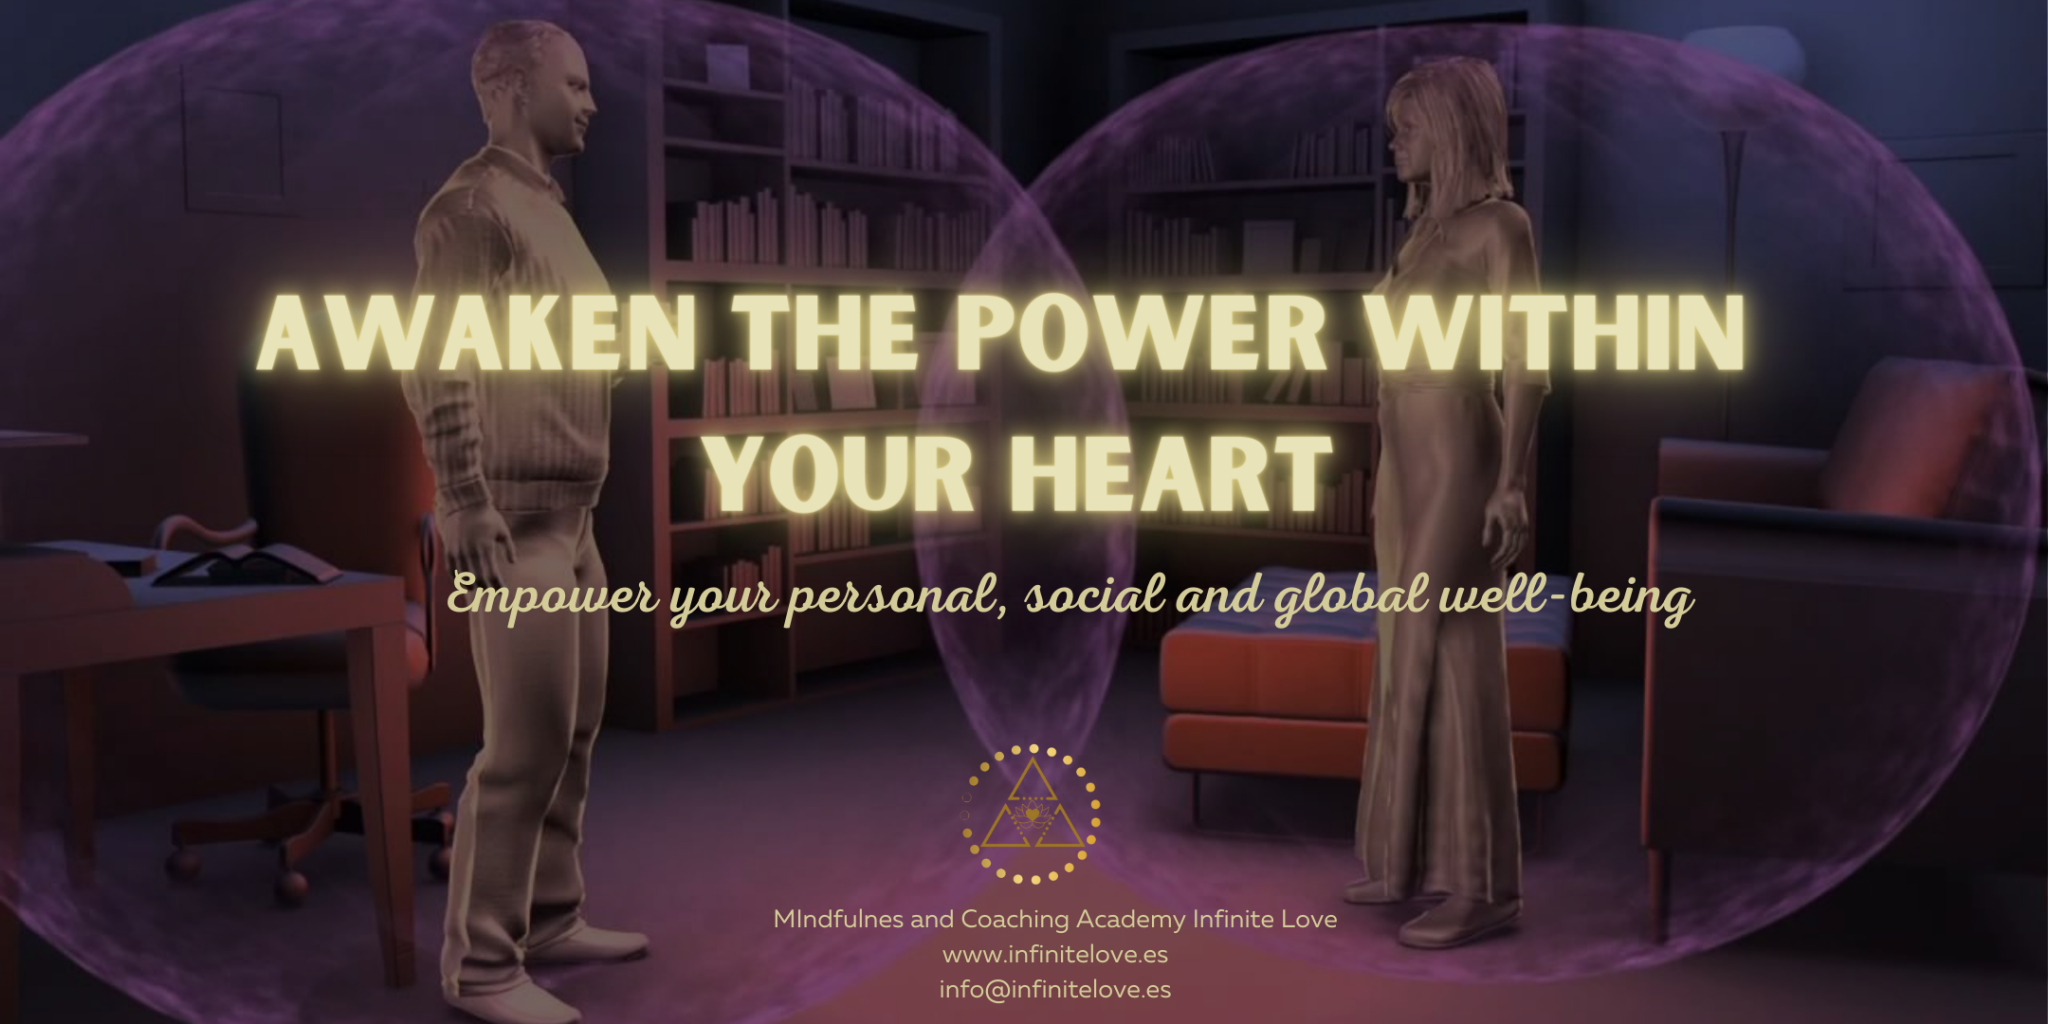 Awaken the power within your heart full day retreat at shanti som marbella by shima shad rouh access your heart intelligence